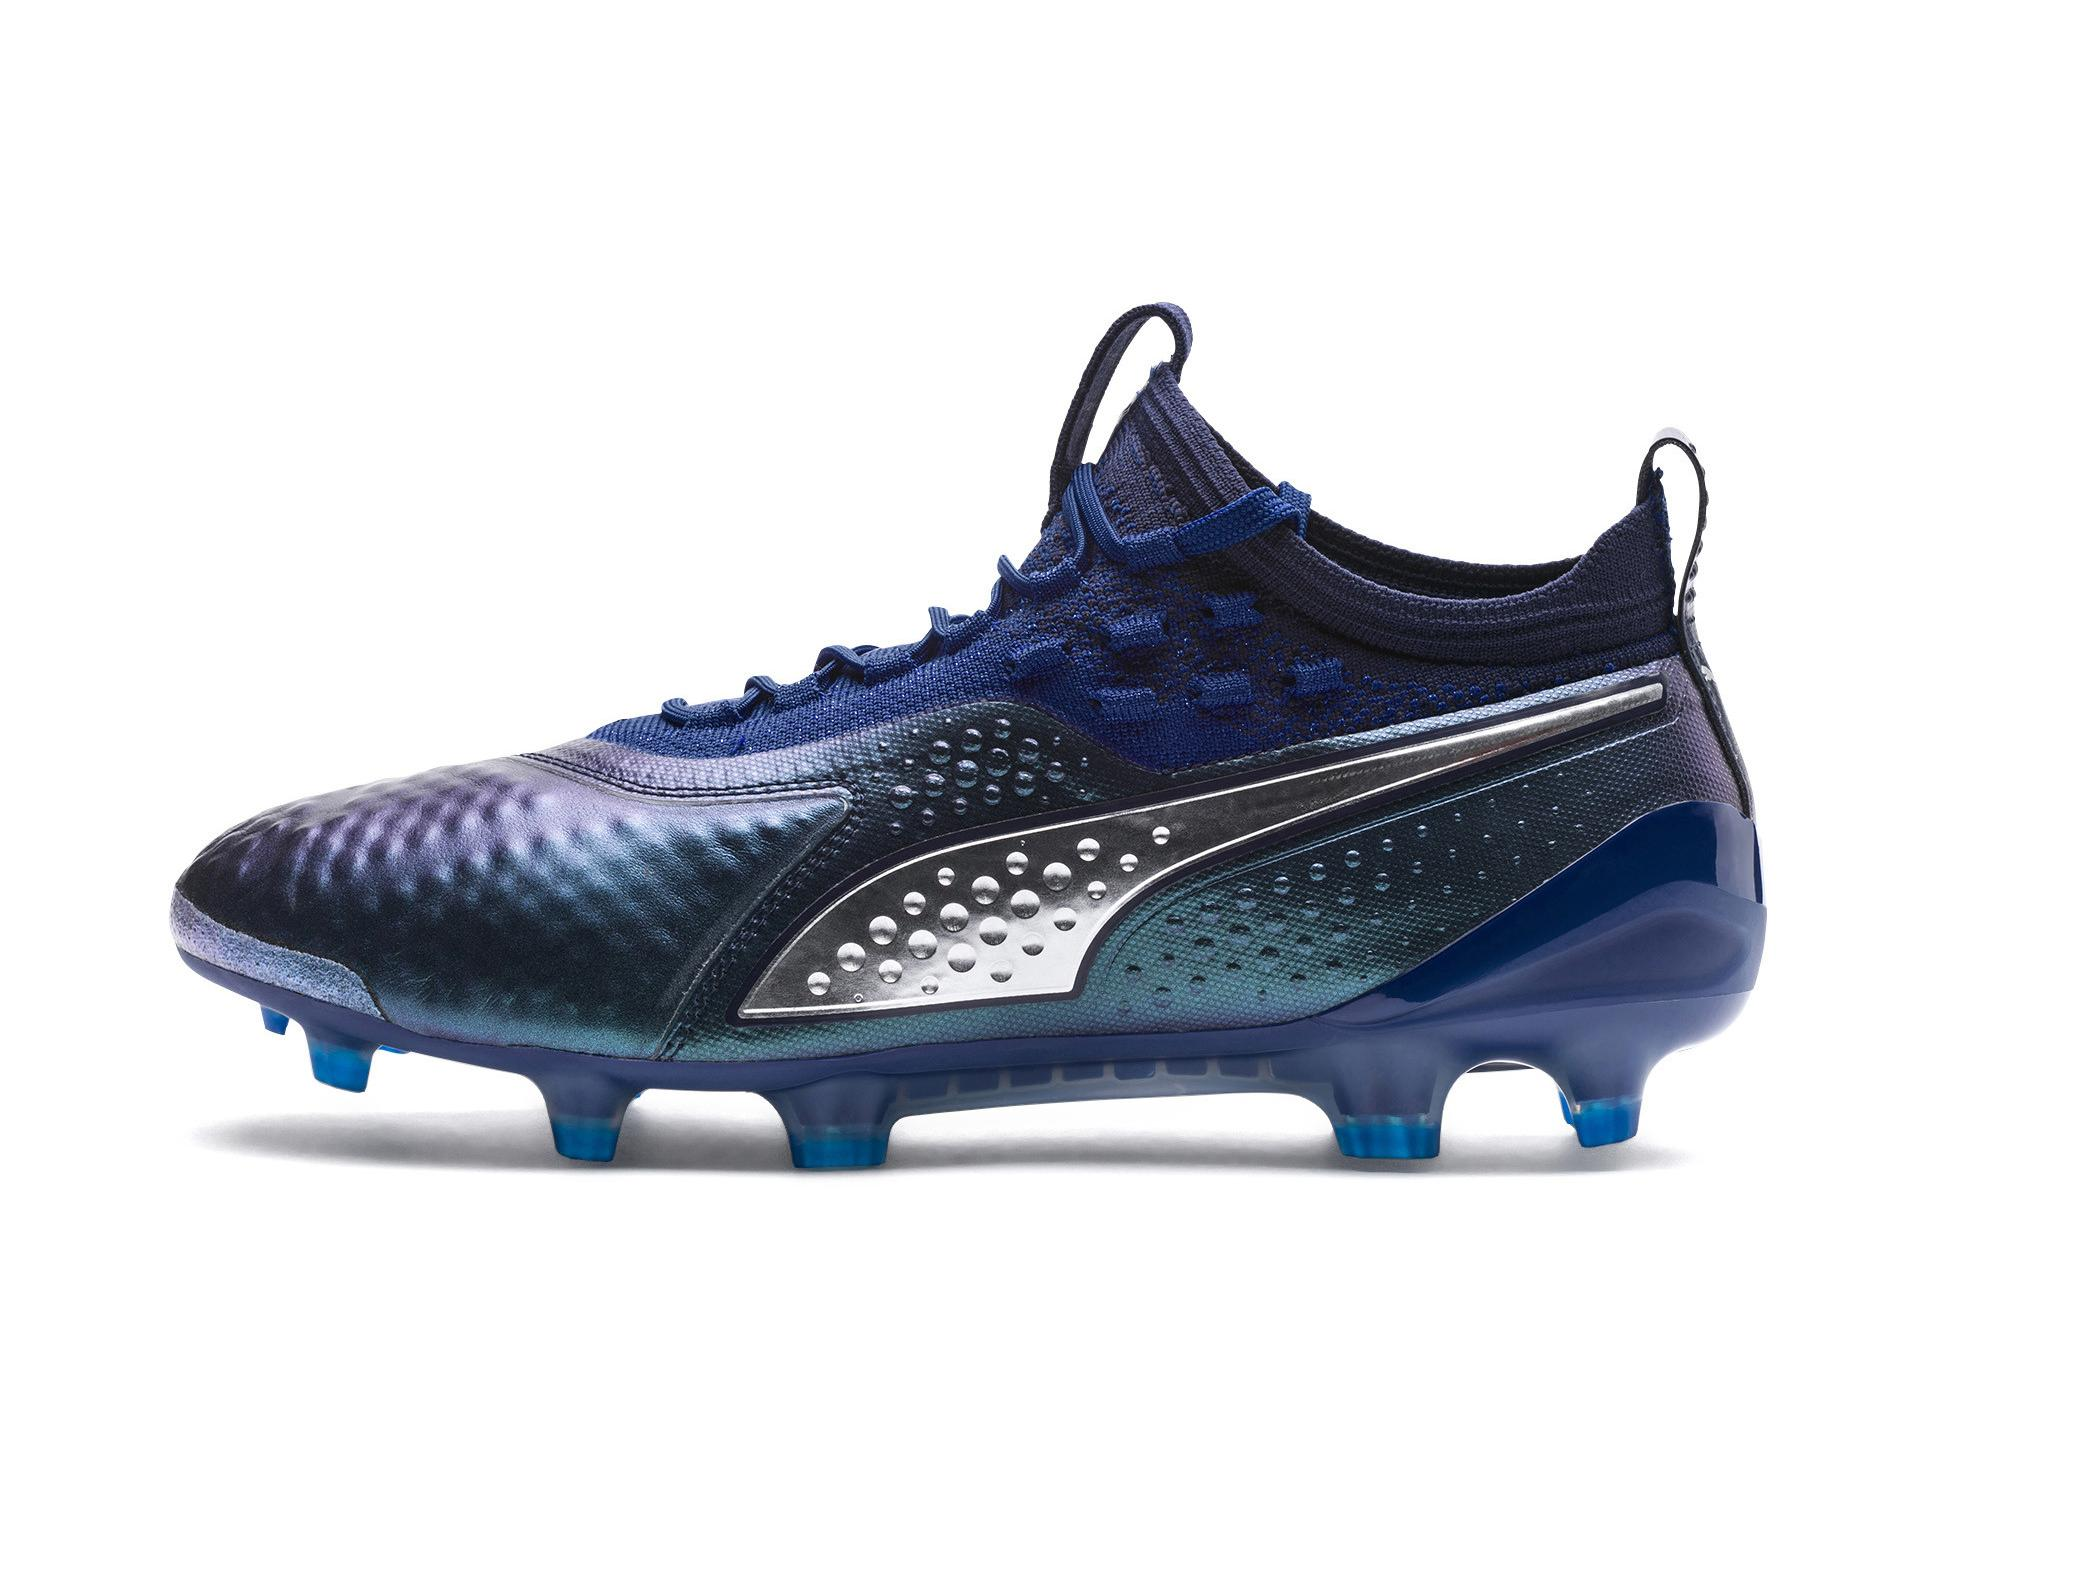 680299029f1db 10 best men's football boots | The Independent